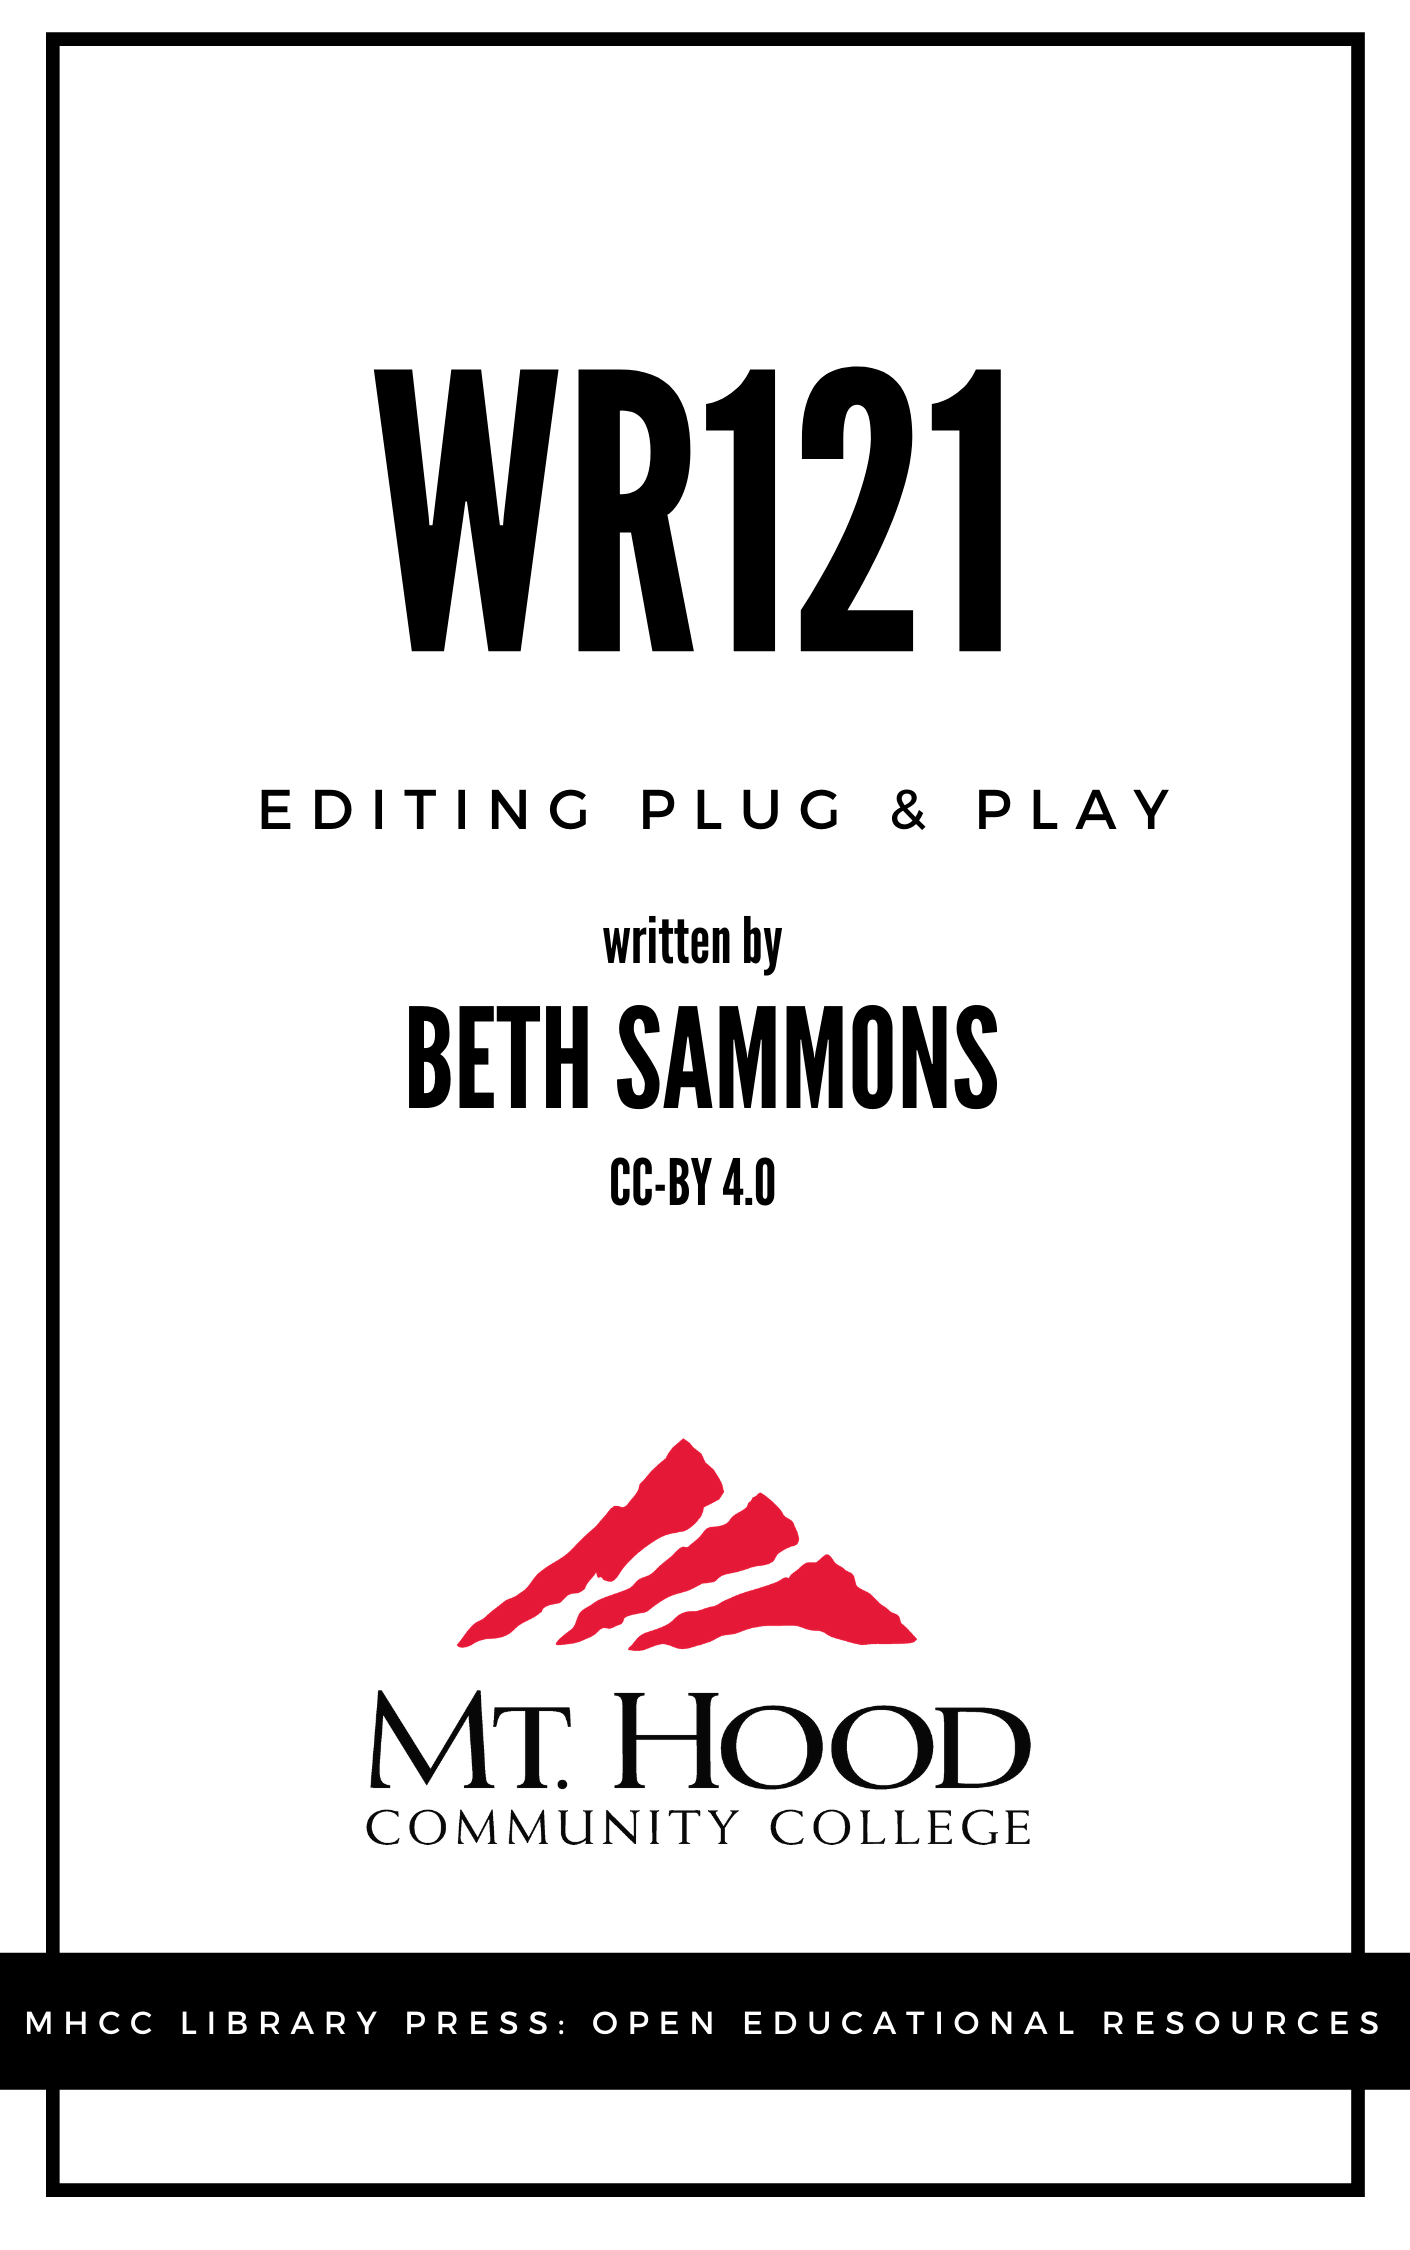 Cover image for WR121 Editing Plug and Play